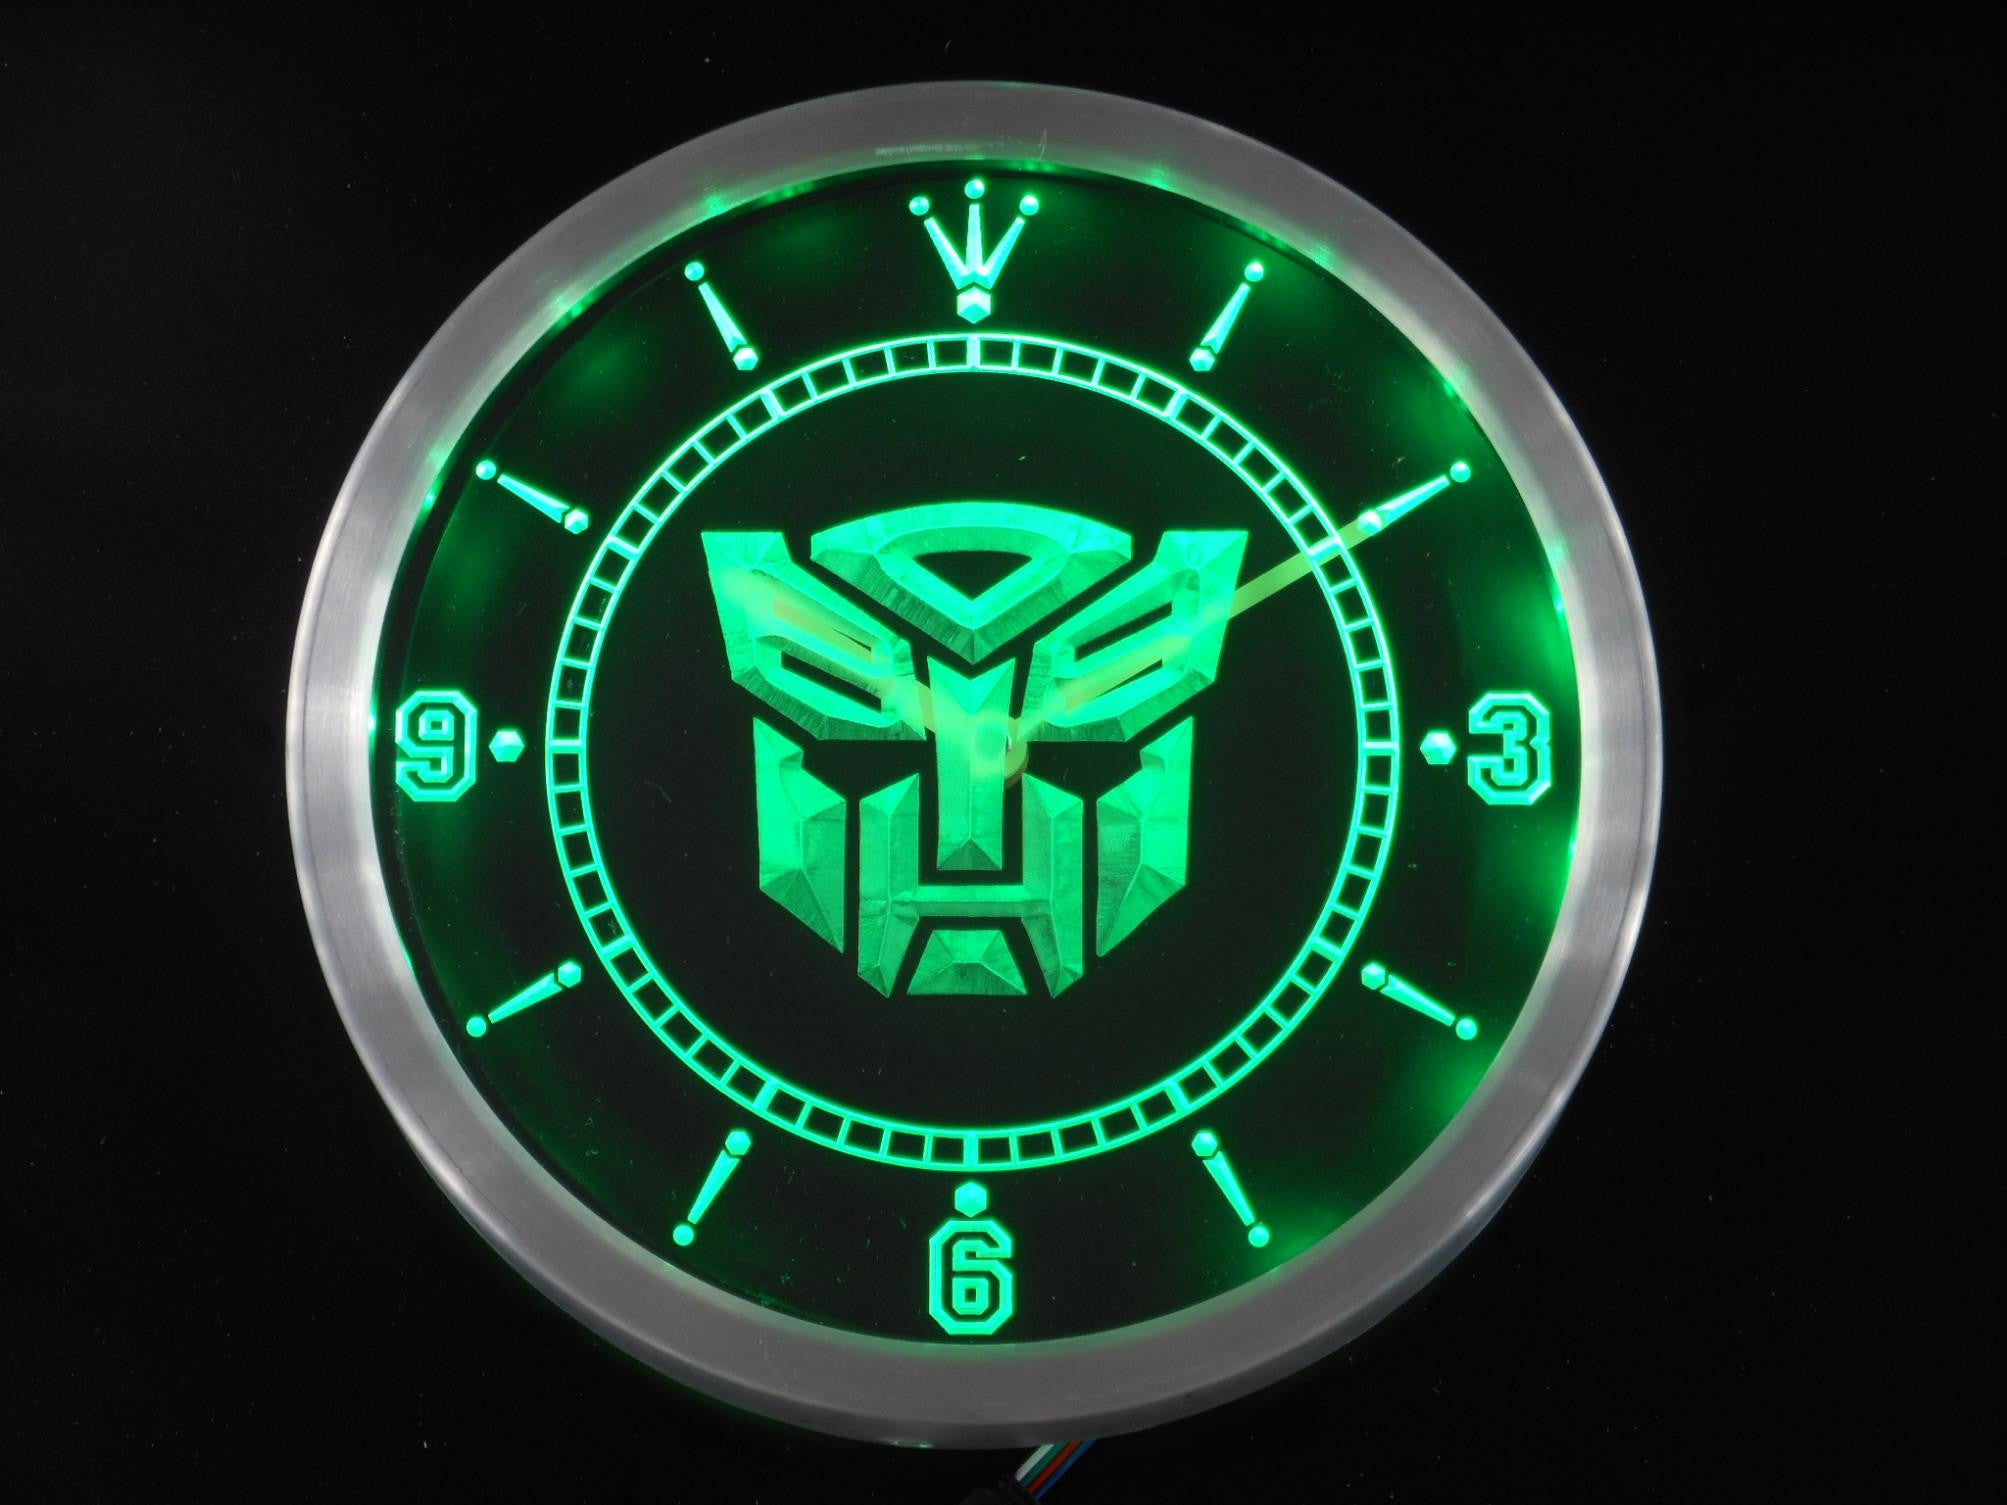 Transformers robot led wall clock vintagily transformers robot led wall clock amipublicfo Choice Image